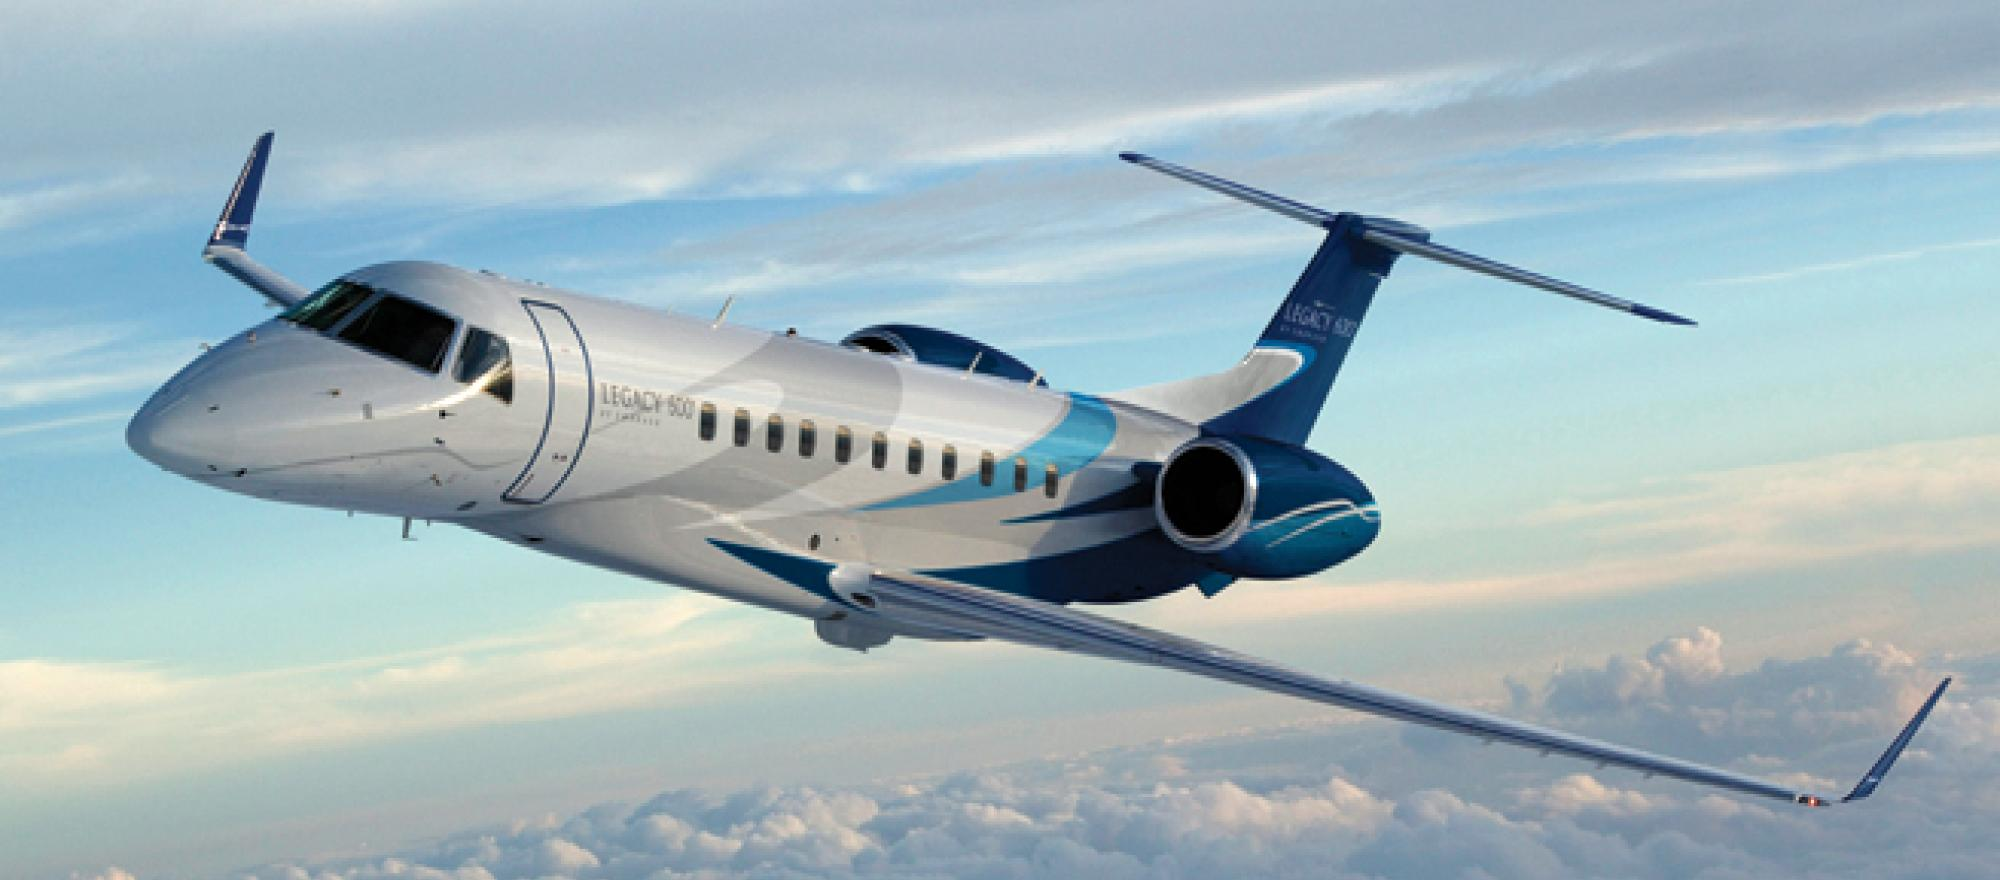 EMBRAER Legacy 600/650 - Specifications - Technical Data / Description